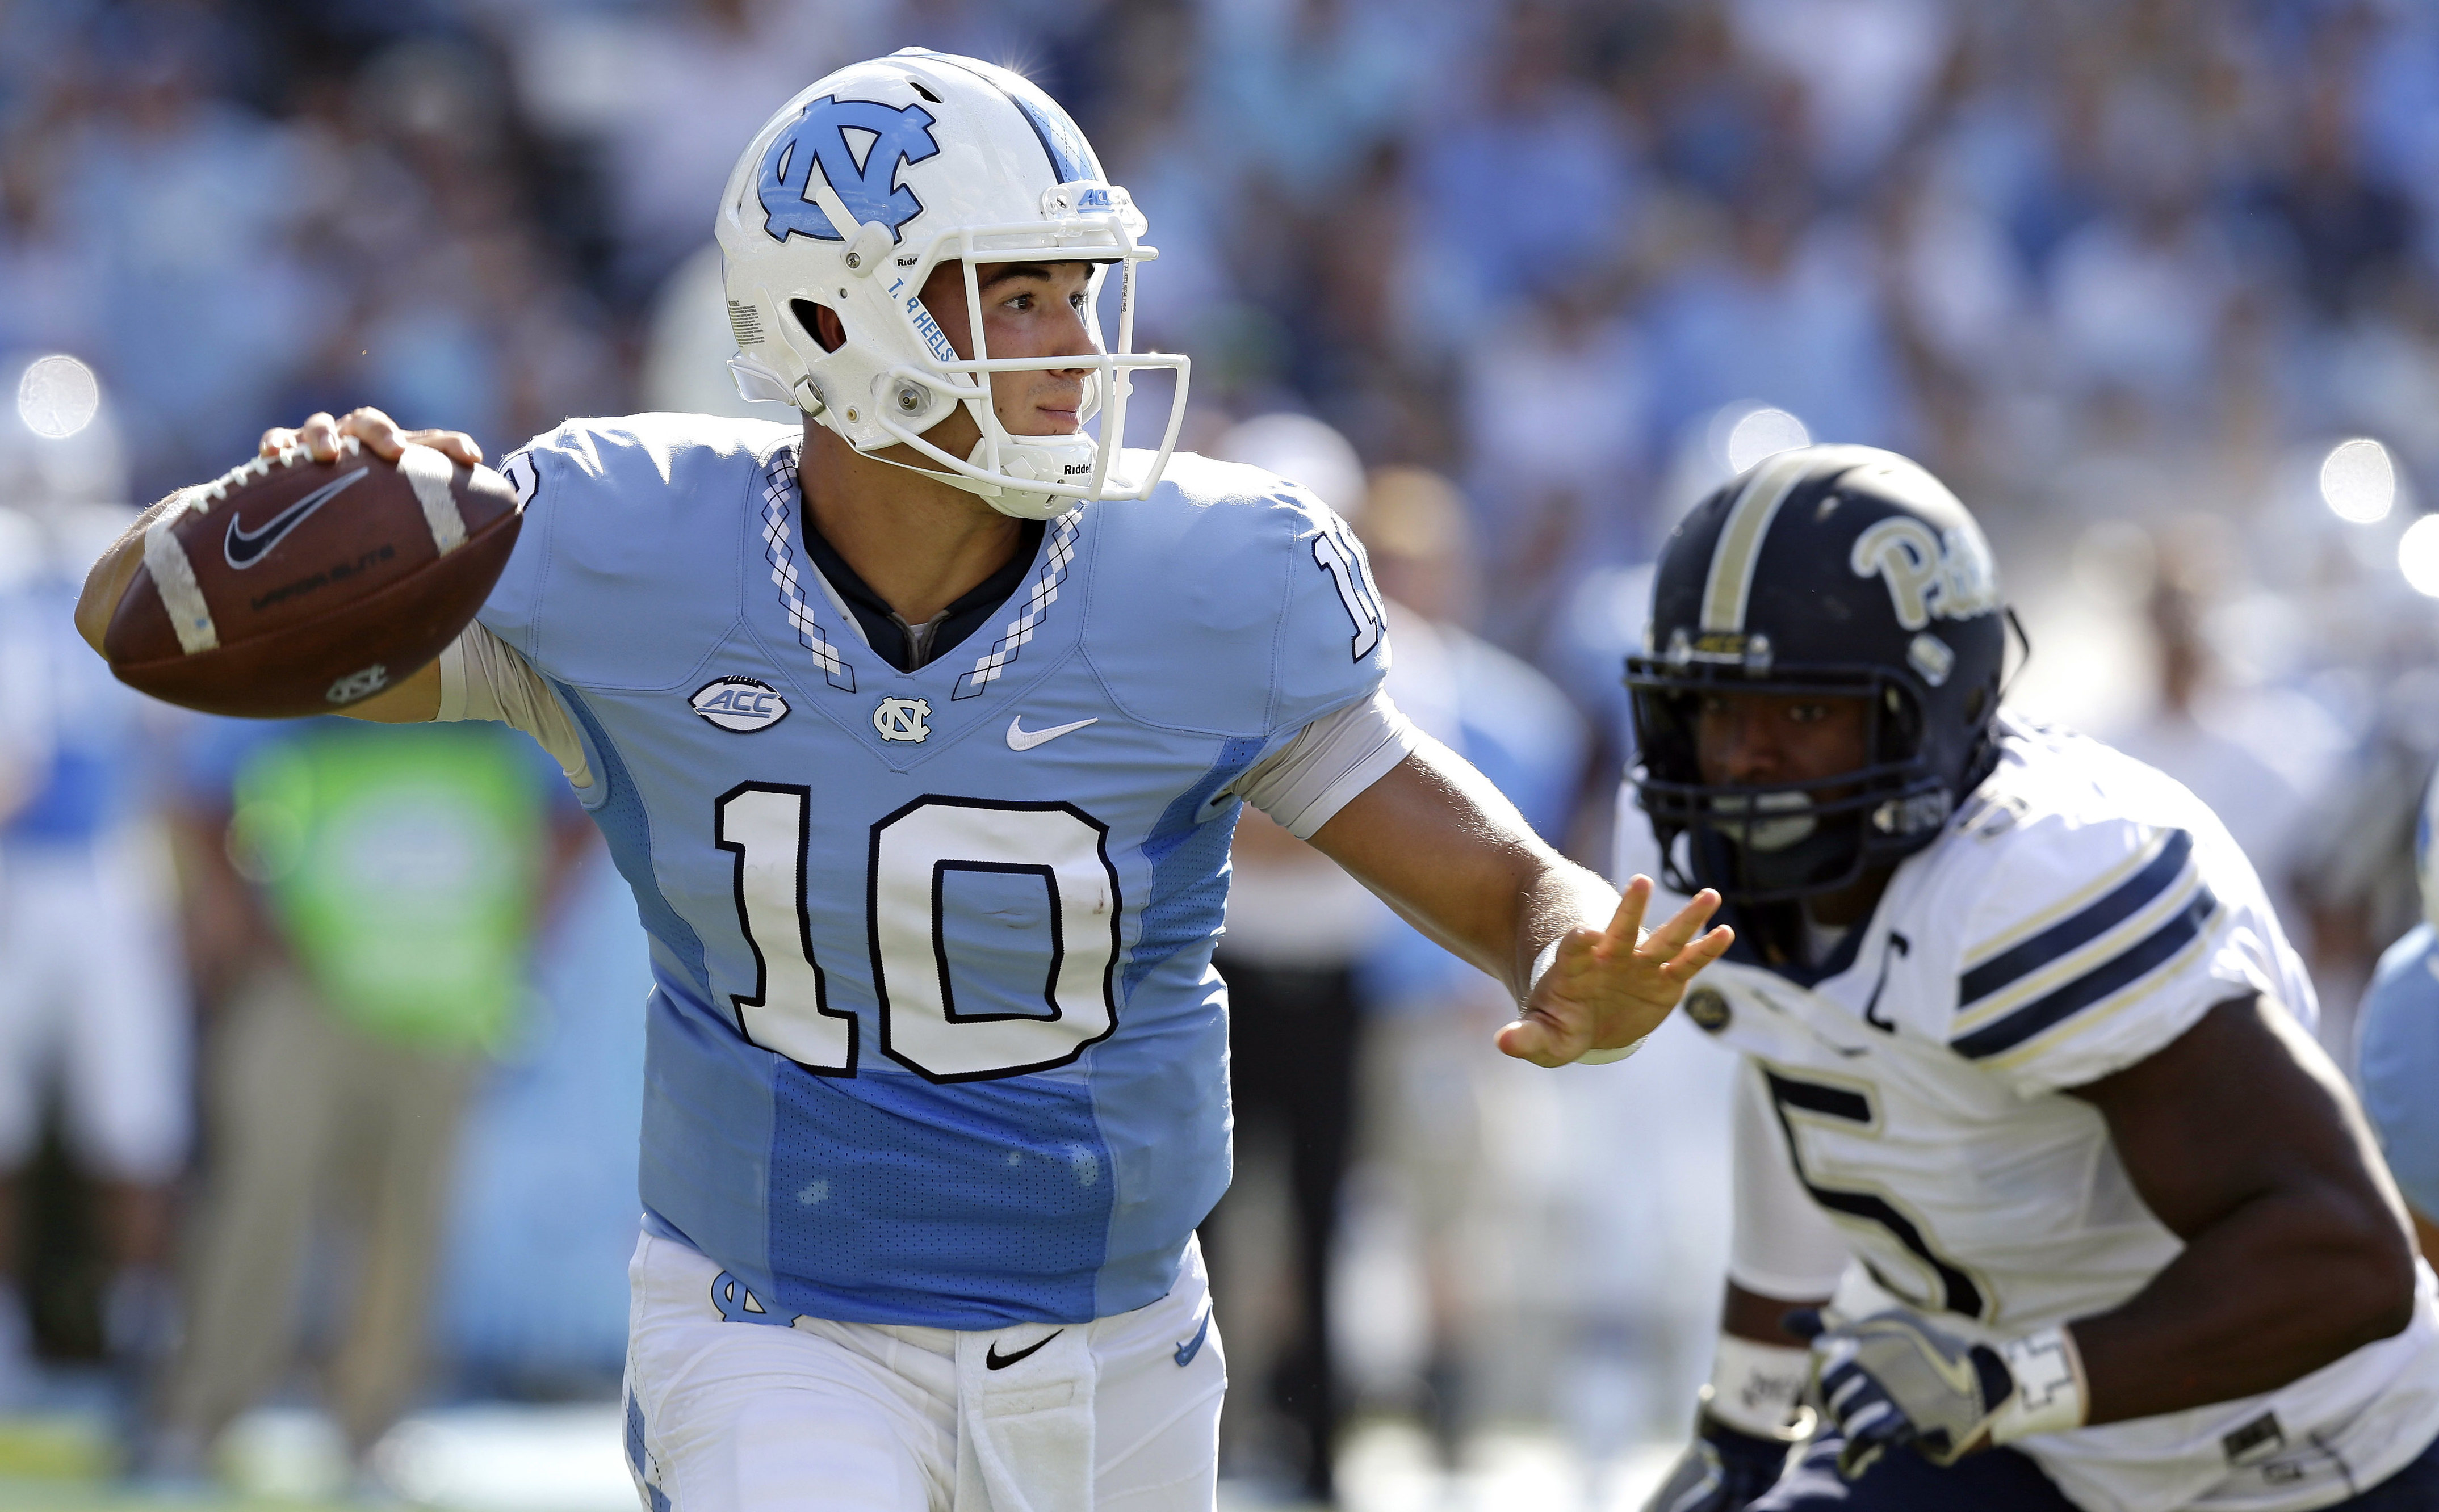 FILE - In this Sept. 24, 2016, file photo, North Carolina quarterback Mitch Trubisky (10) throws a pass as Pittsburgh's Ejuan Price (5) rushes during the first half of an NCAA college football game in Chapel Hill, N.C. UNC's takes on Florida State in an A